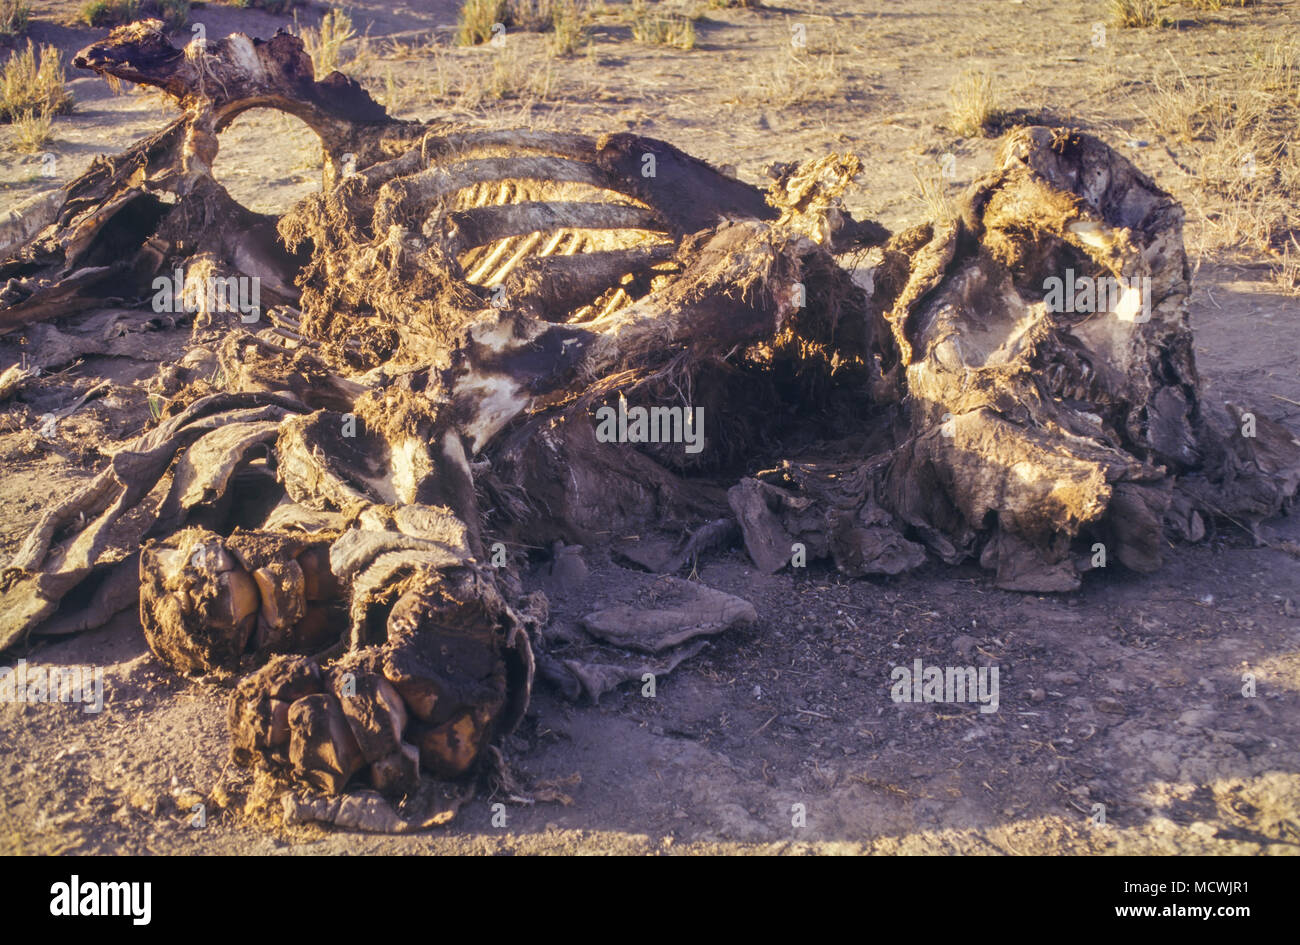 Putrid carcass of elephant killed by poachers. Estimated levels of illegal elephant killings in Central Africa have been occurring at unsustainable - Stock Image